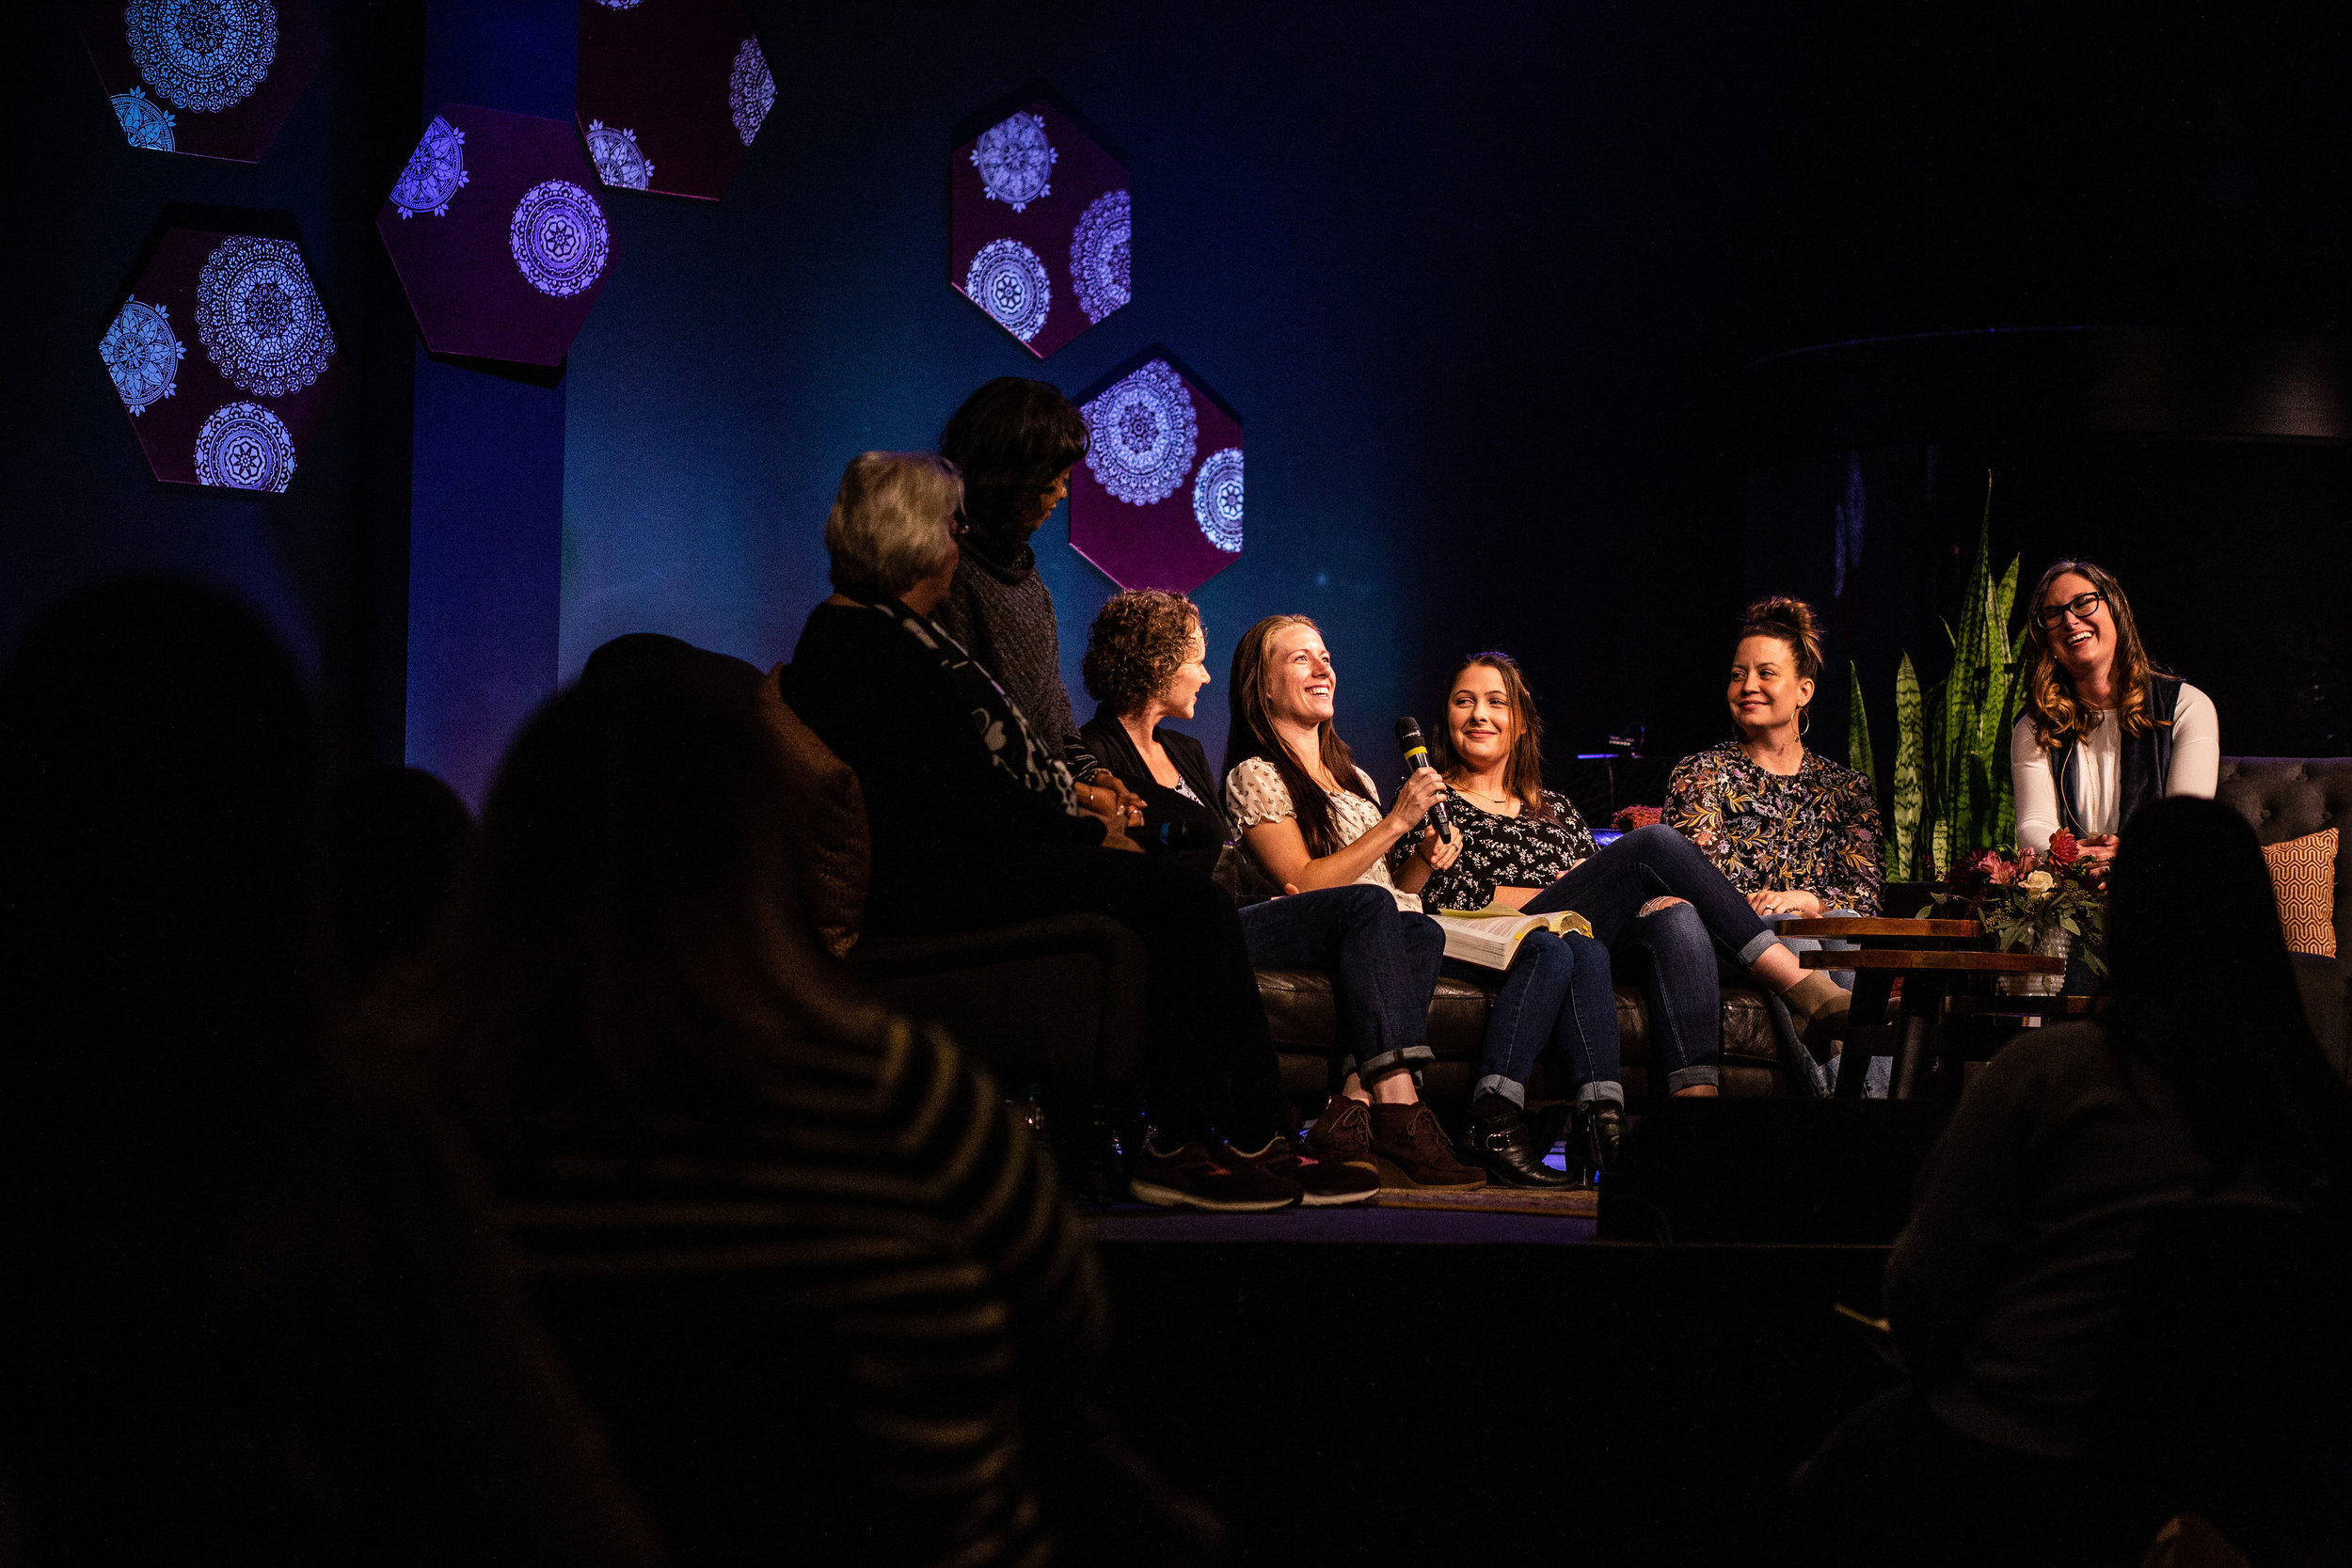 Connection With Other Women - Connection with other women and with God is a focus of Breakaway Conference. There are environments designed for great conversation, prayerful processing and just good fun with friends throughout the two days.